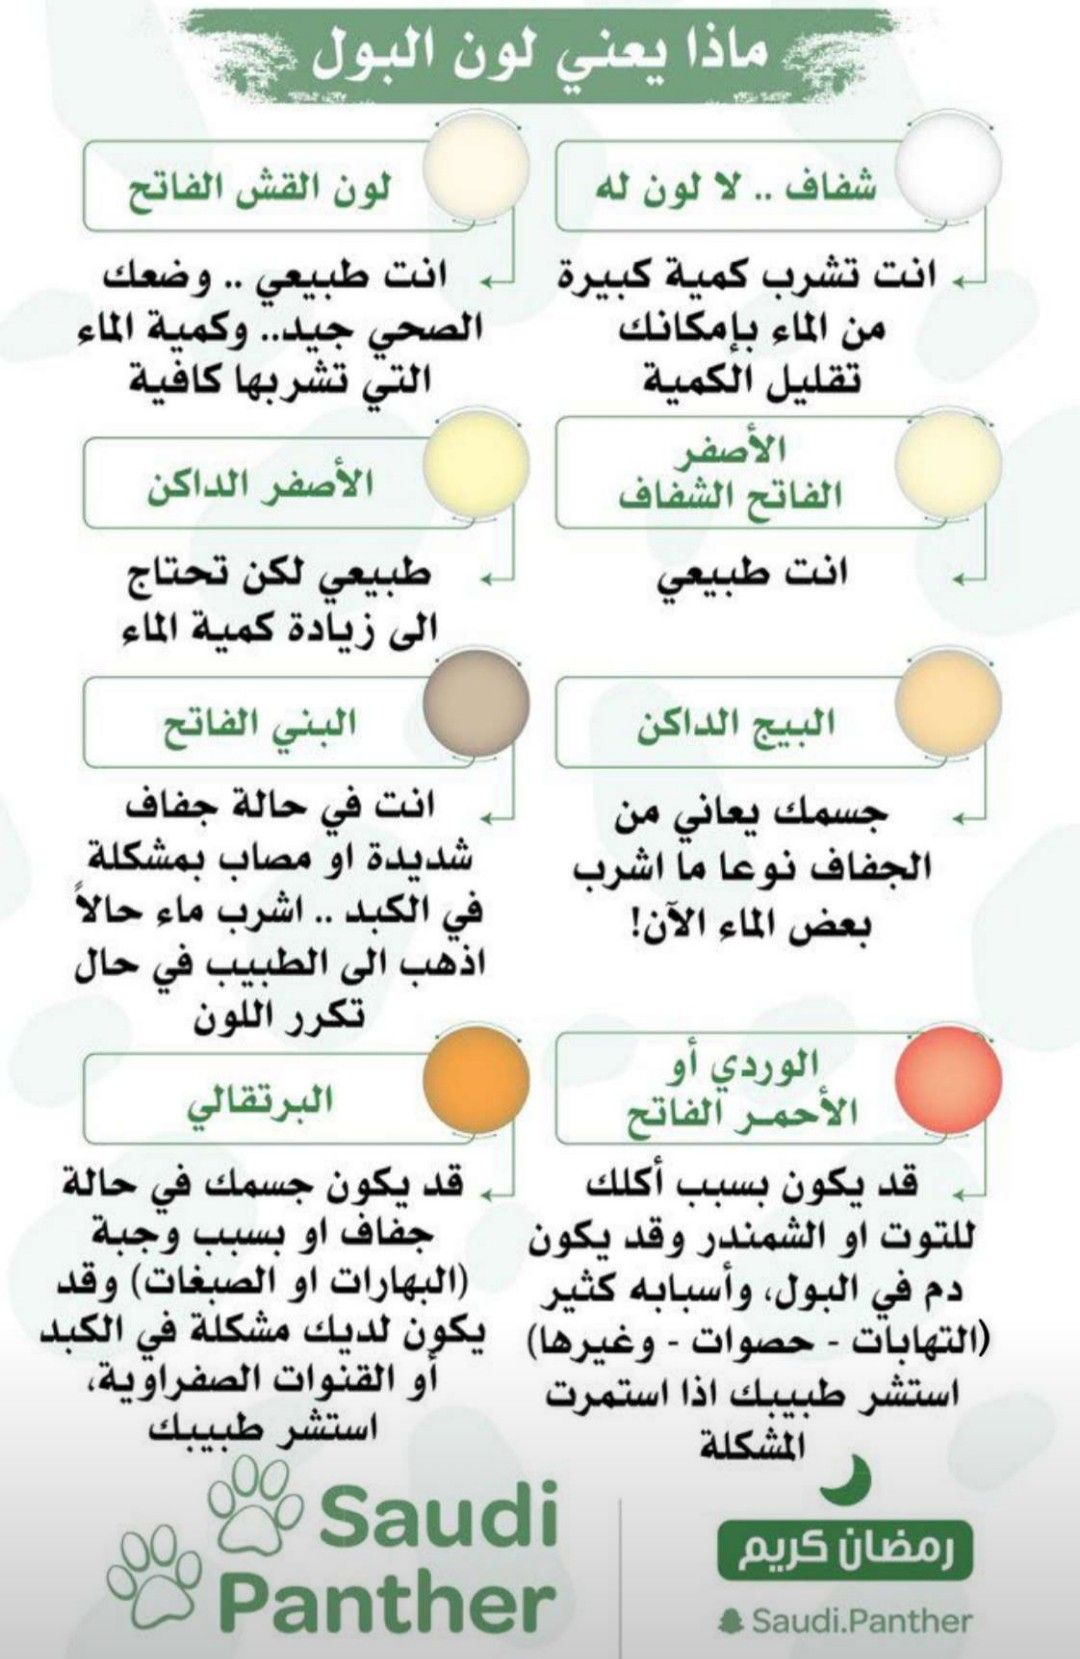 Pin By Mohammed Al Harbi On صحتي In 2020 Art Word Search Puzzle Words